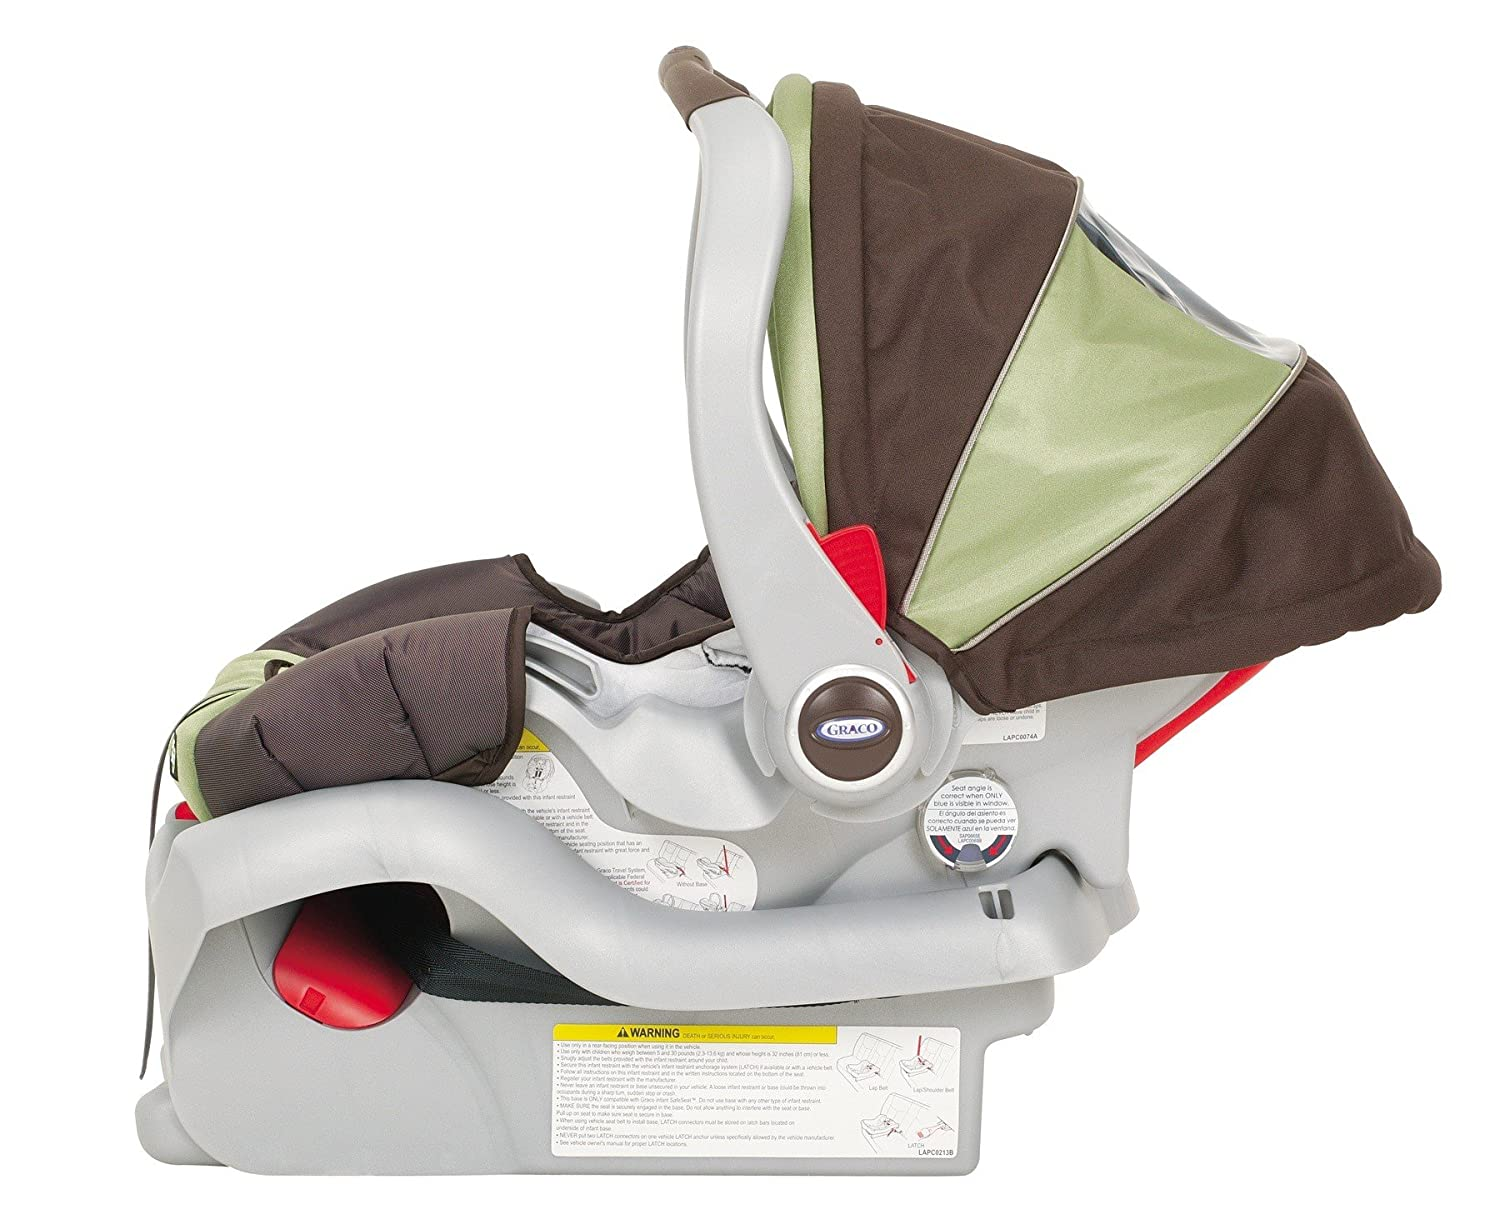 Amazon.com : Graco Safe Seat Infant Car Seat, Soho (Discontinued by